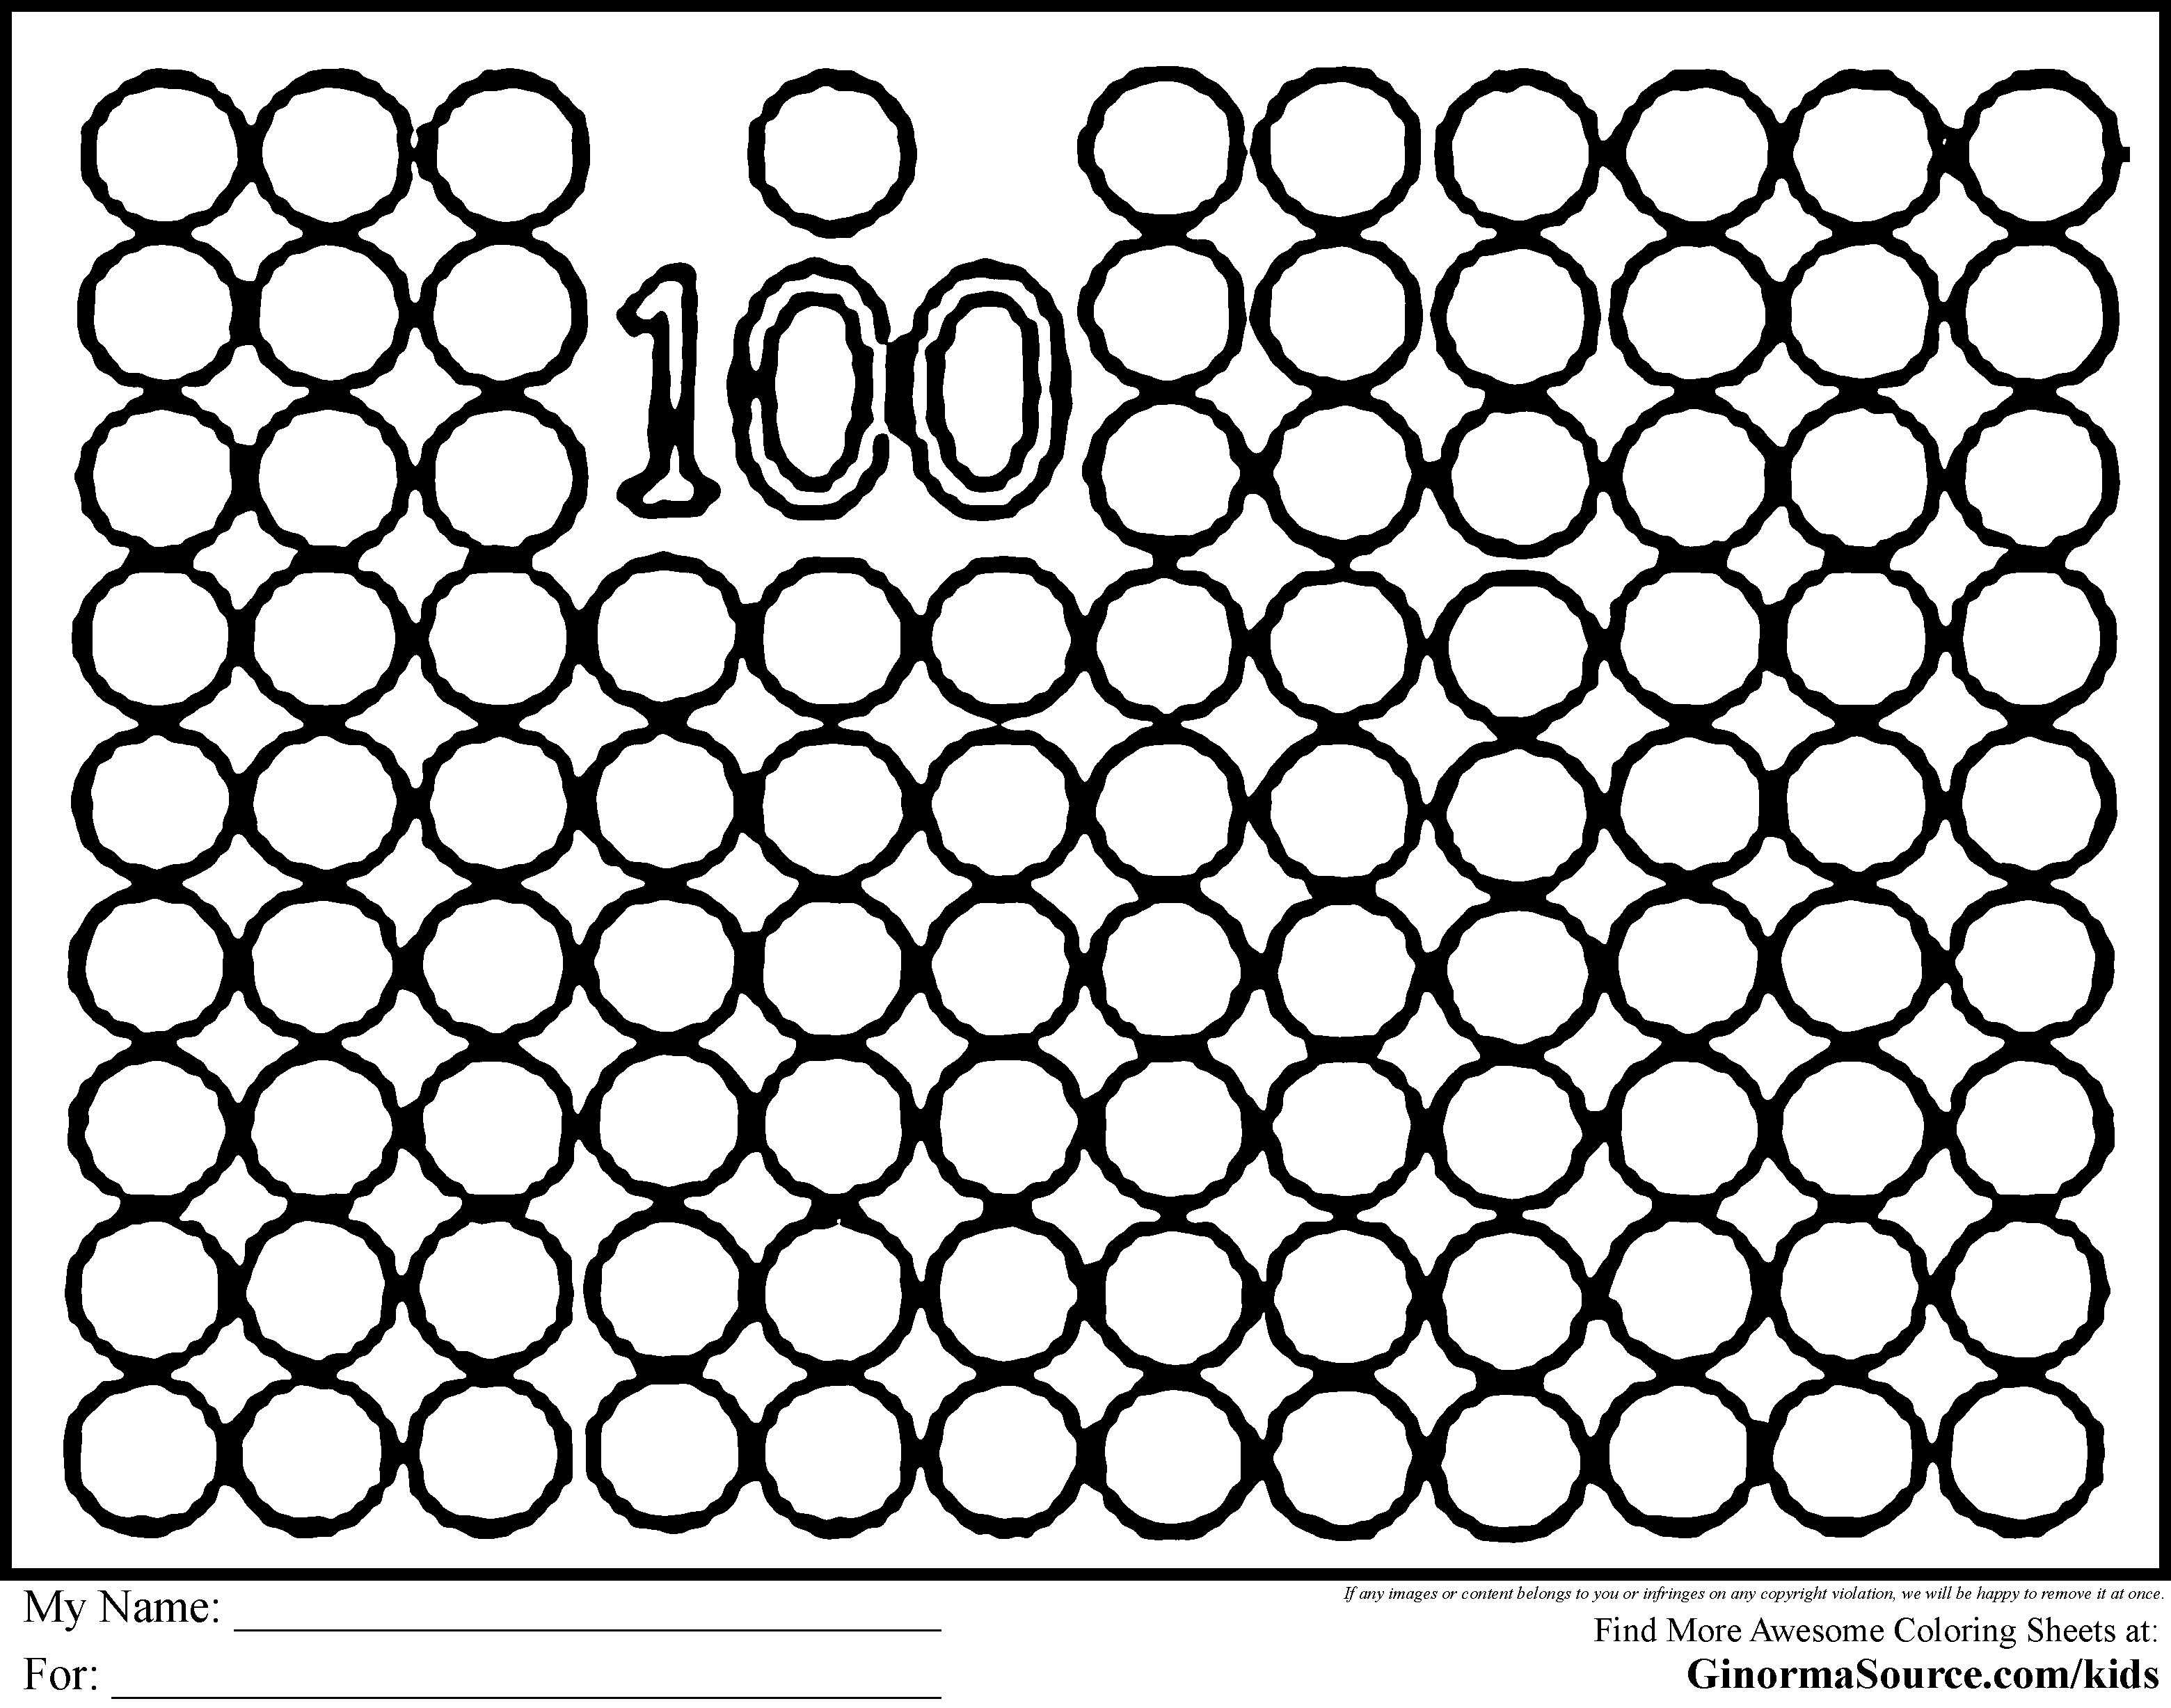 100 Day Coloring Pages